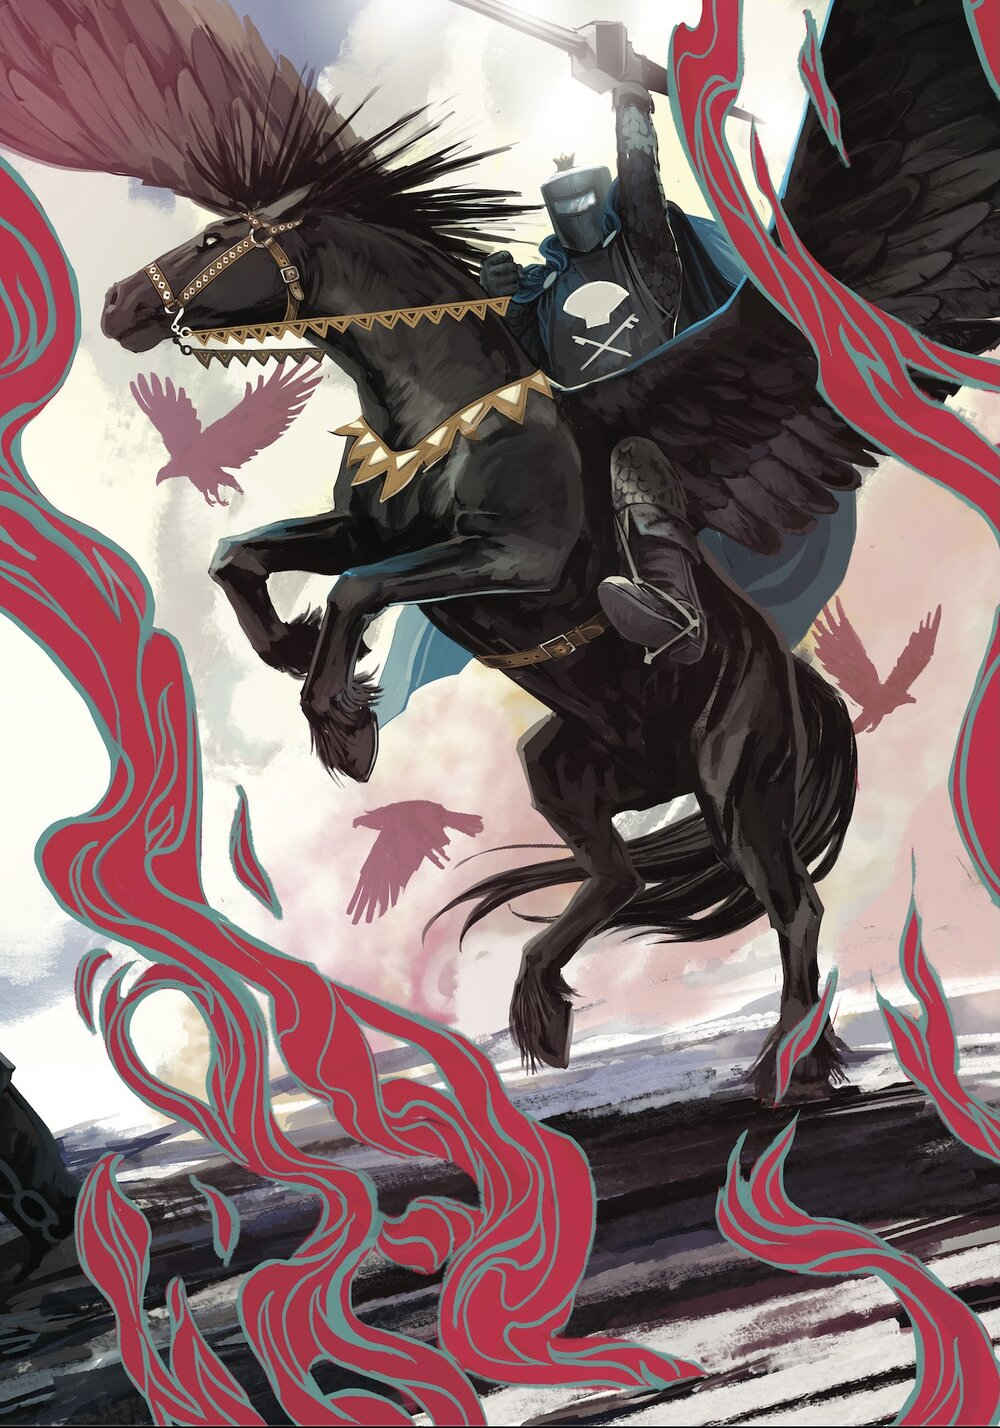 CURSE OF THE EBONY BLADE #2 (OF 5) - FEB210555   Written by SIMON SPURRIER  Art by SERGIO DÁVILA  Cover by IBAN COELLO  Legend of the Black Knight Variant Cover by STEPHANIE HANS - FEB210556   On Sale 4/21